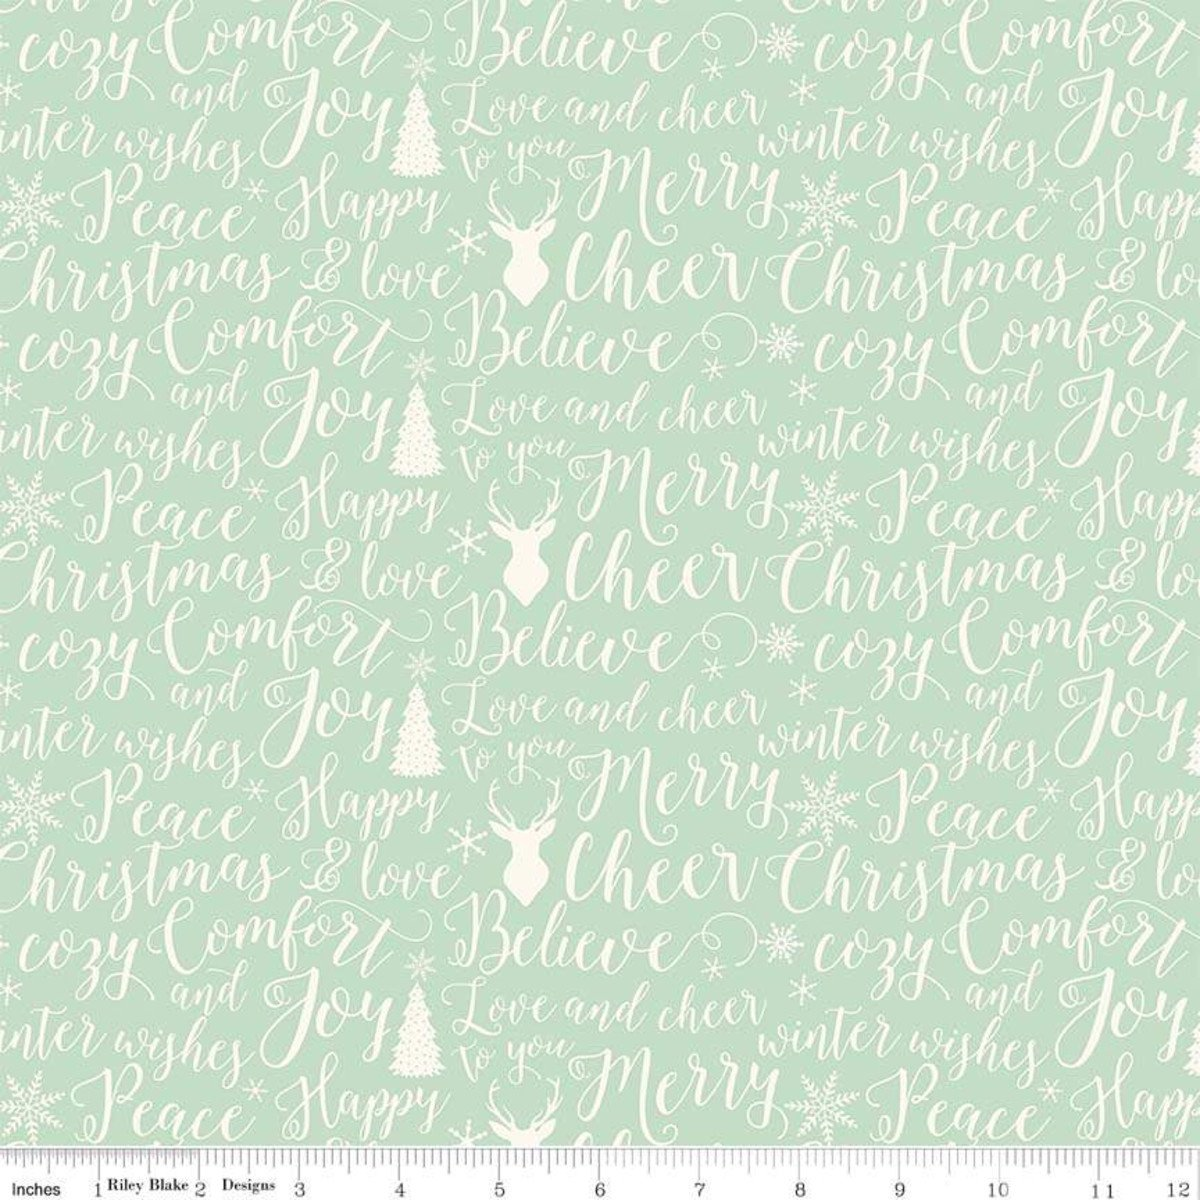 C6264 LT GREEN   COMFORT AND JOY COLLECTION BY DANI MOGSTAD FOR MY MIND'S EYE FOR RILEY BLAKE FABRICS